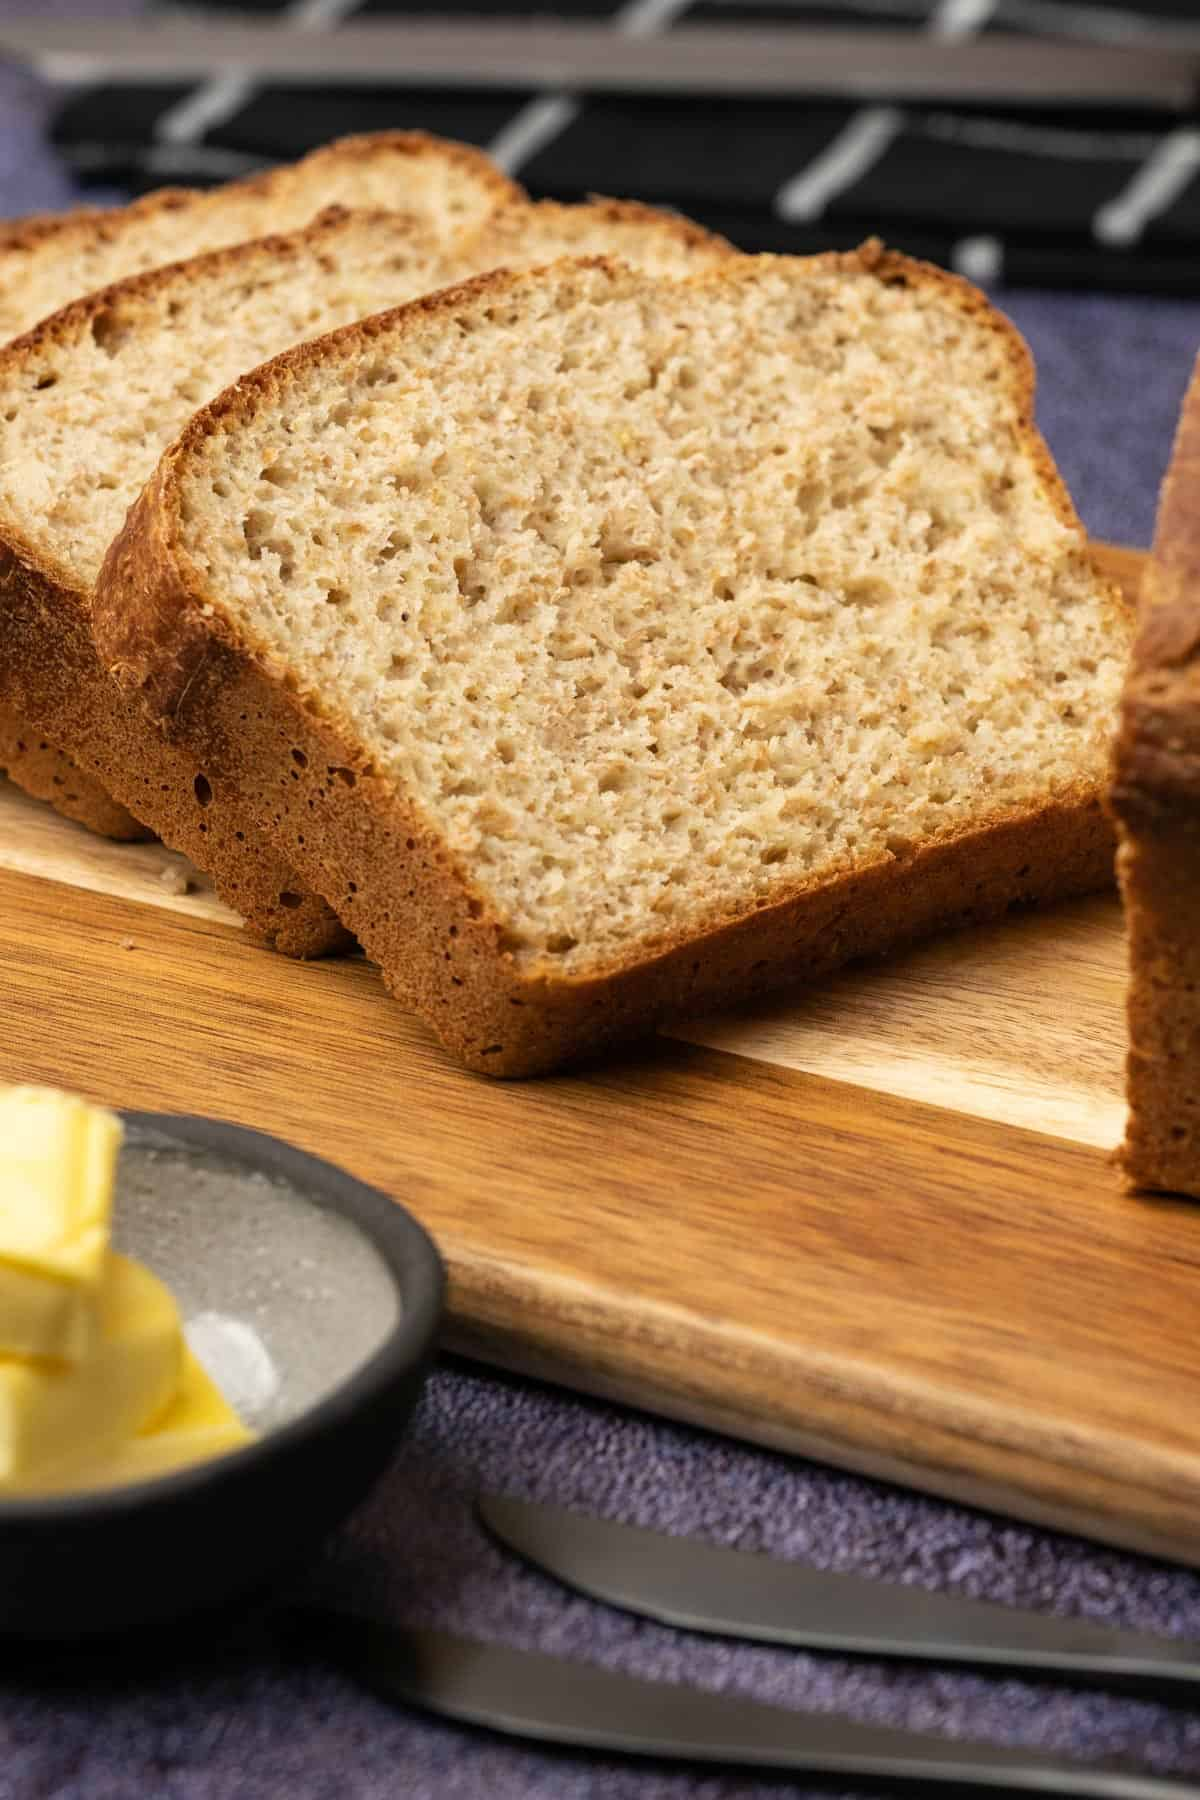 Homemade bread slices on a wooden board.